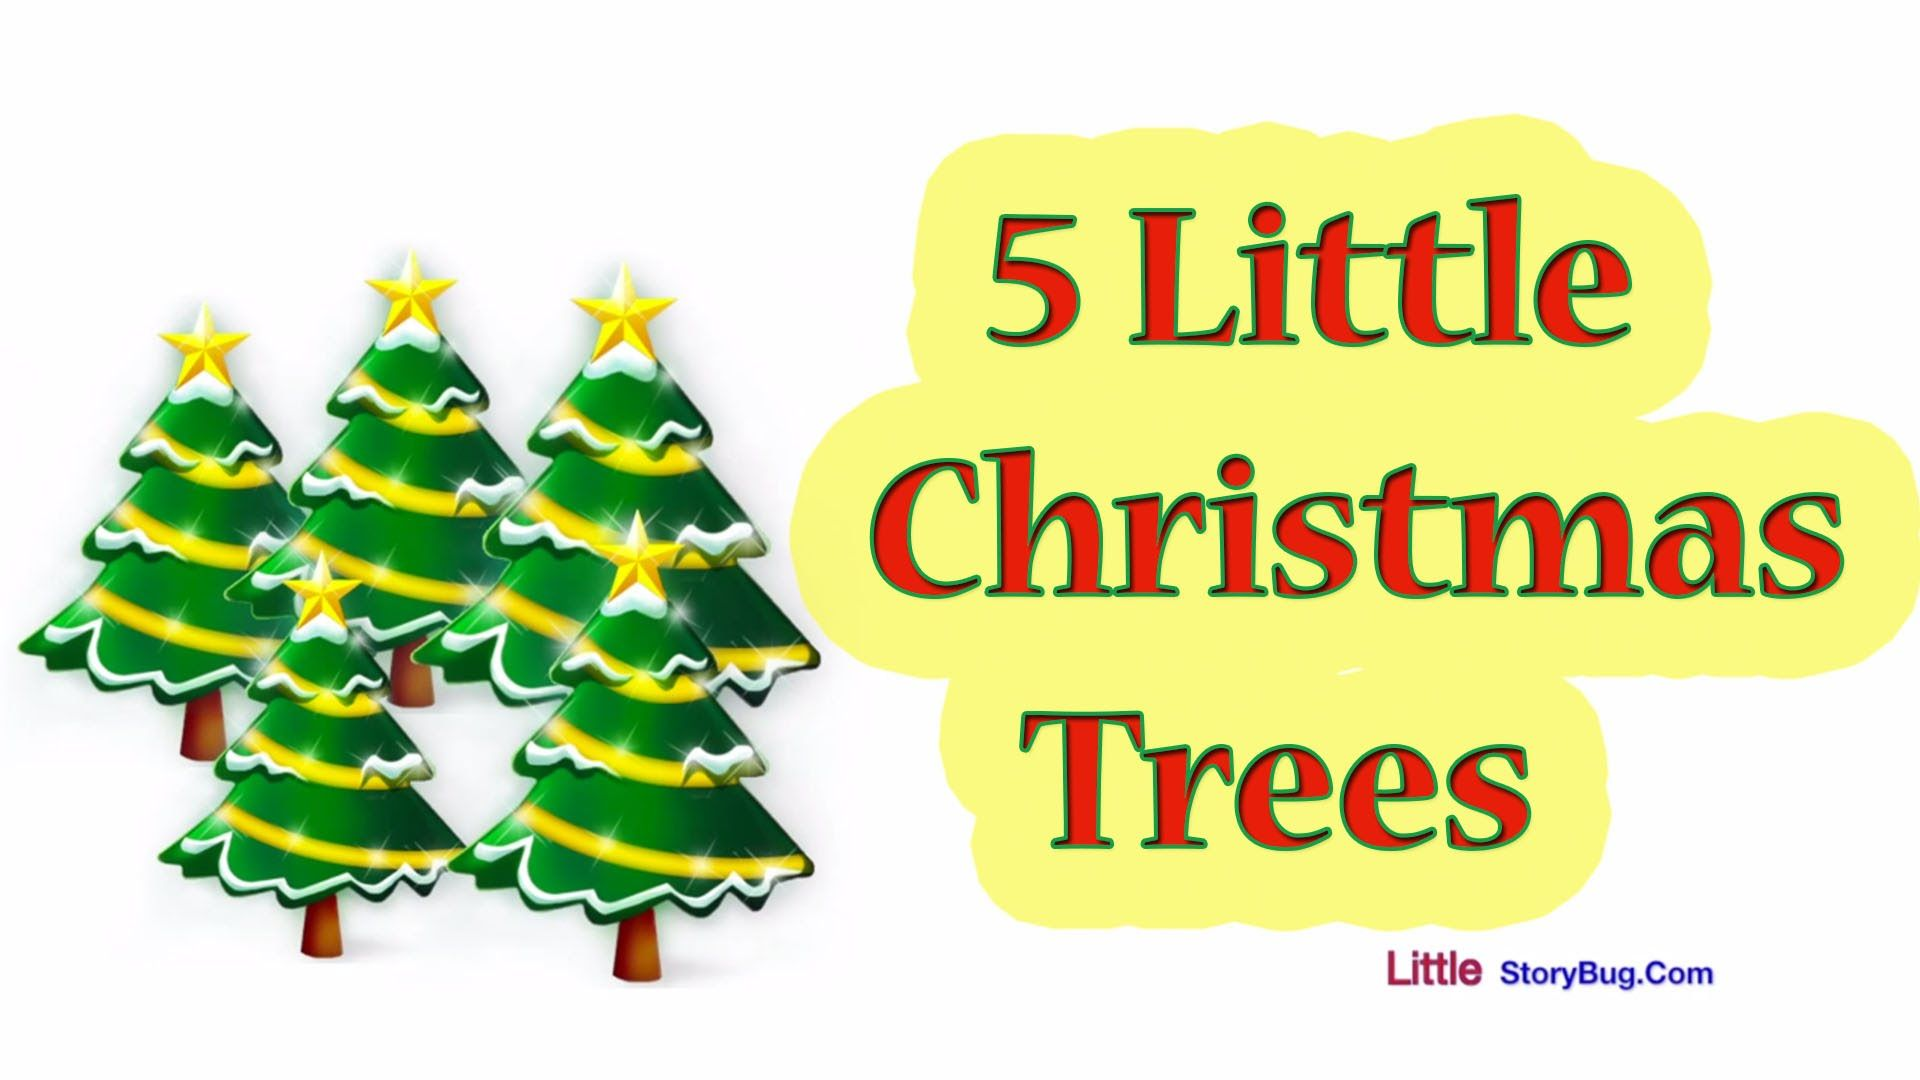 Christmas Songs For Children 5 Little Christmas Trees Littlestorybug Little Christmas Trees Christmas Tree Poem Christmas